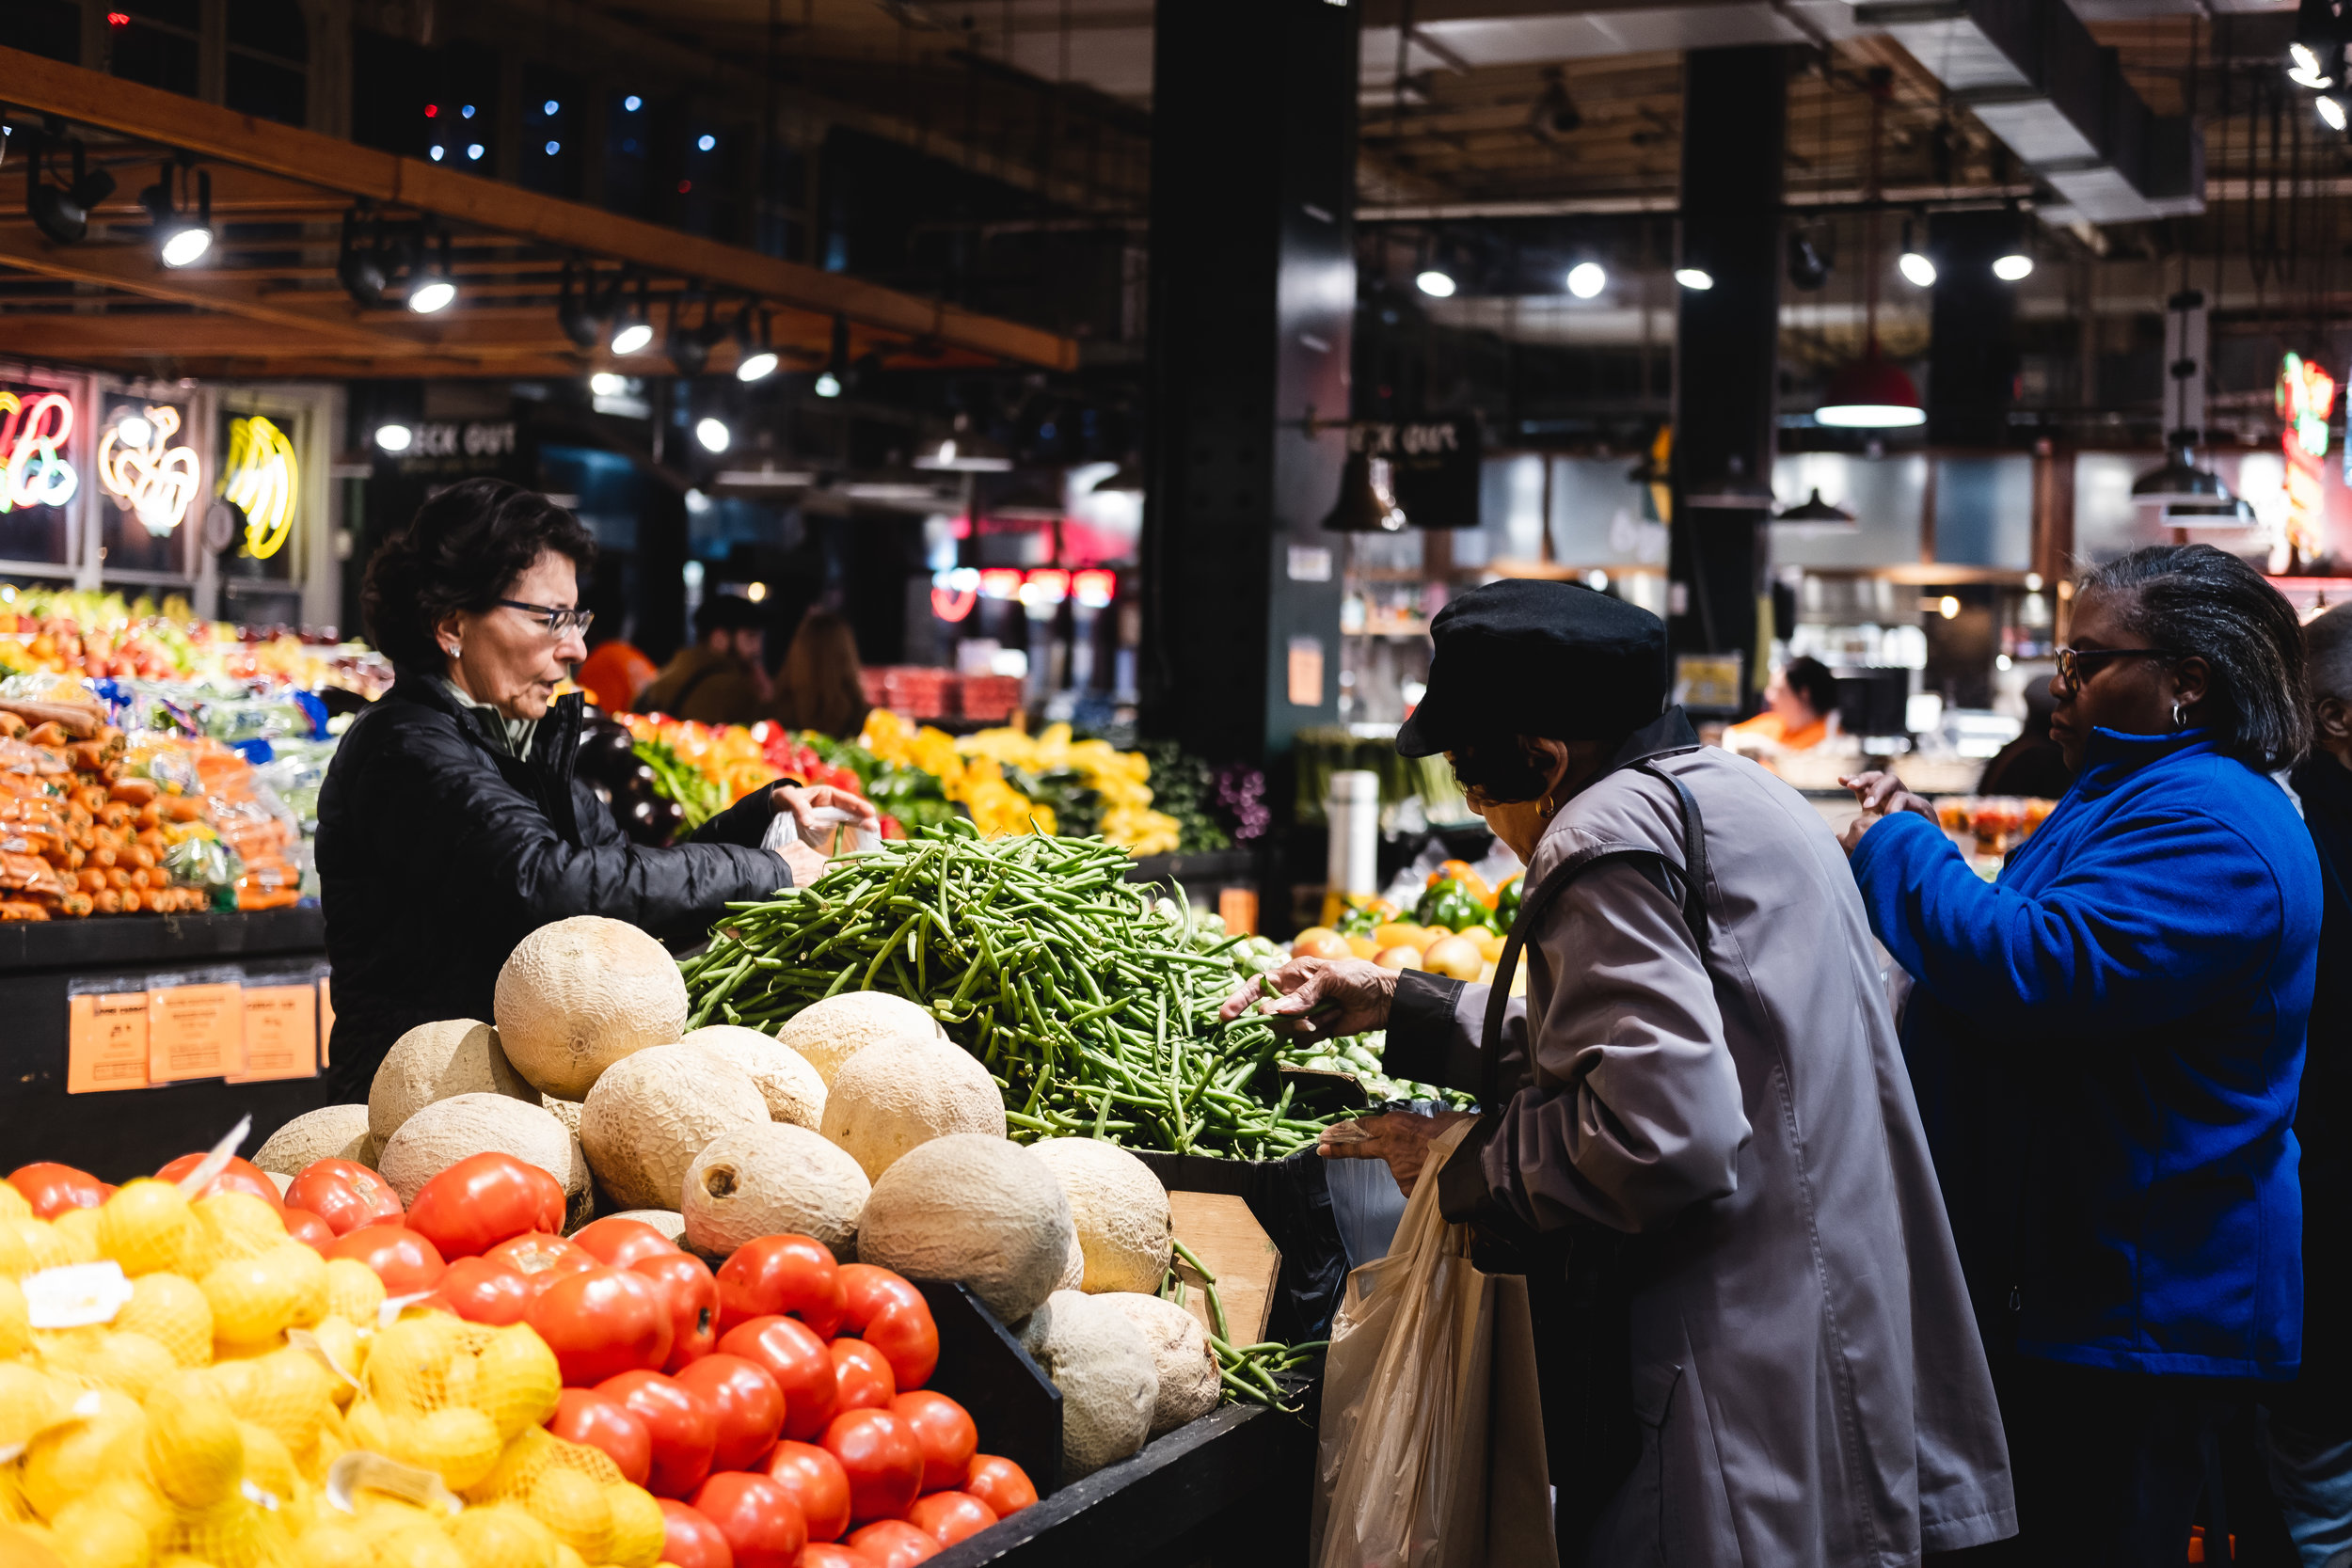 2019_READING TERMINAL MARKET_FOOD_THE PHILLY CHECKLIST-2.jpg